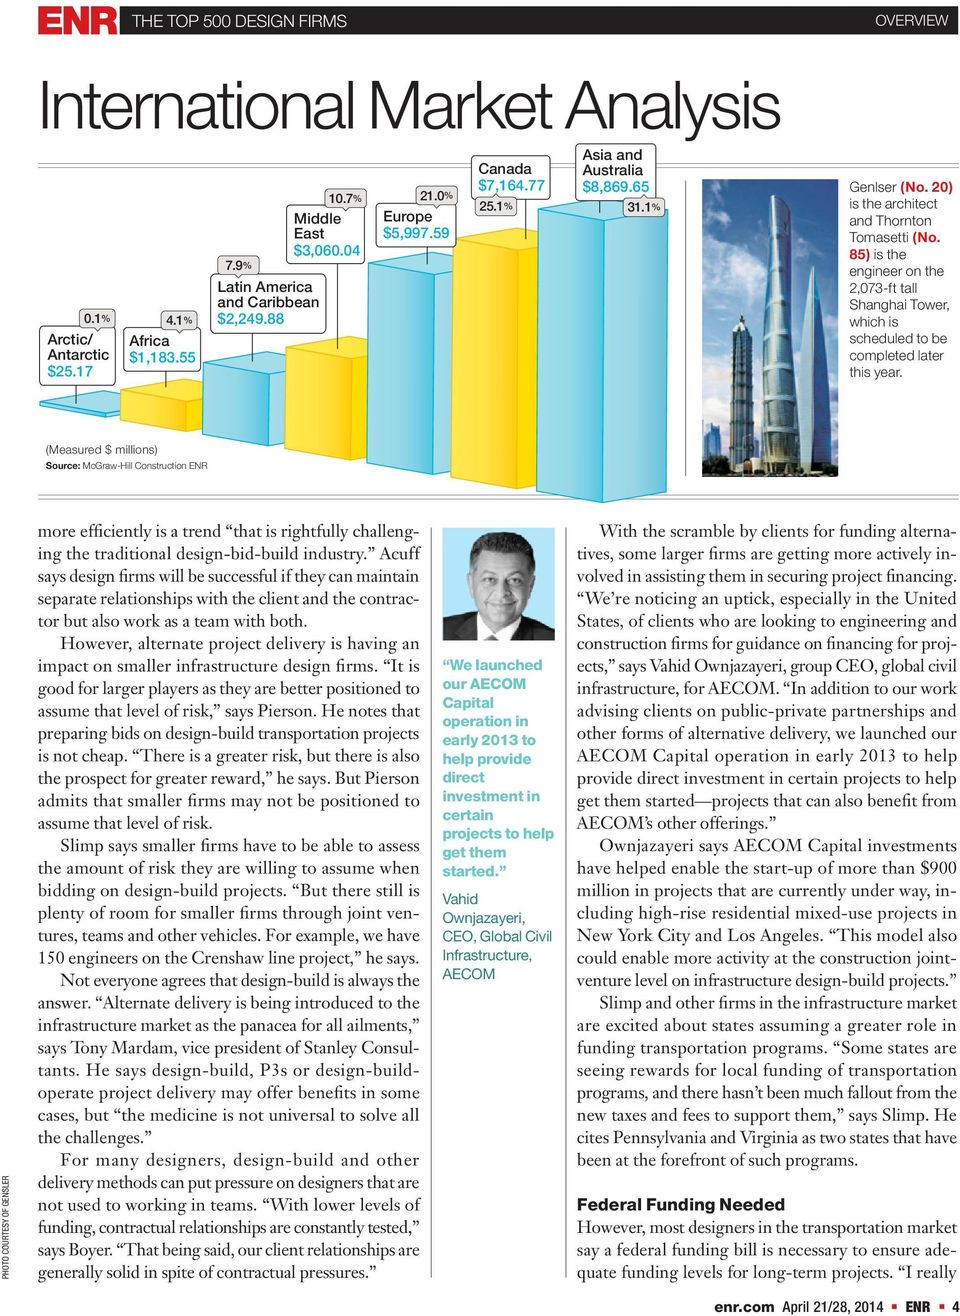 International Market 85) is the Revenue: $28.5 engineer on the 30.8% 2,073-ft tall Shanghai Tower, which is scheduled to be completed later this year.